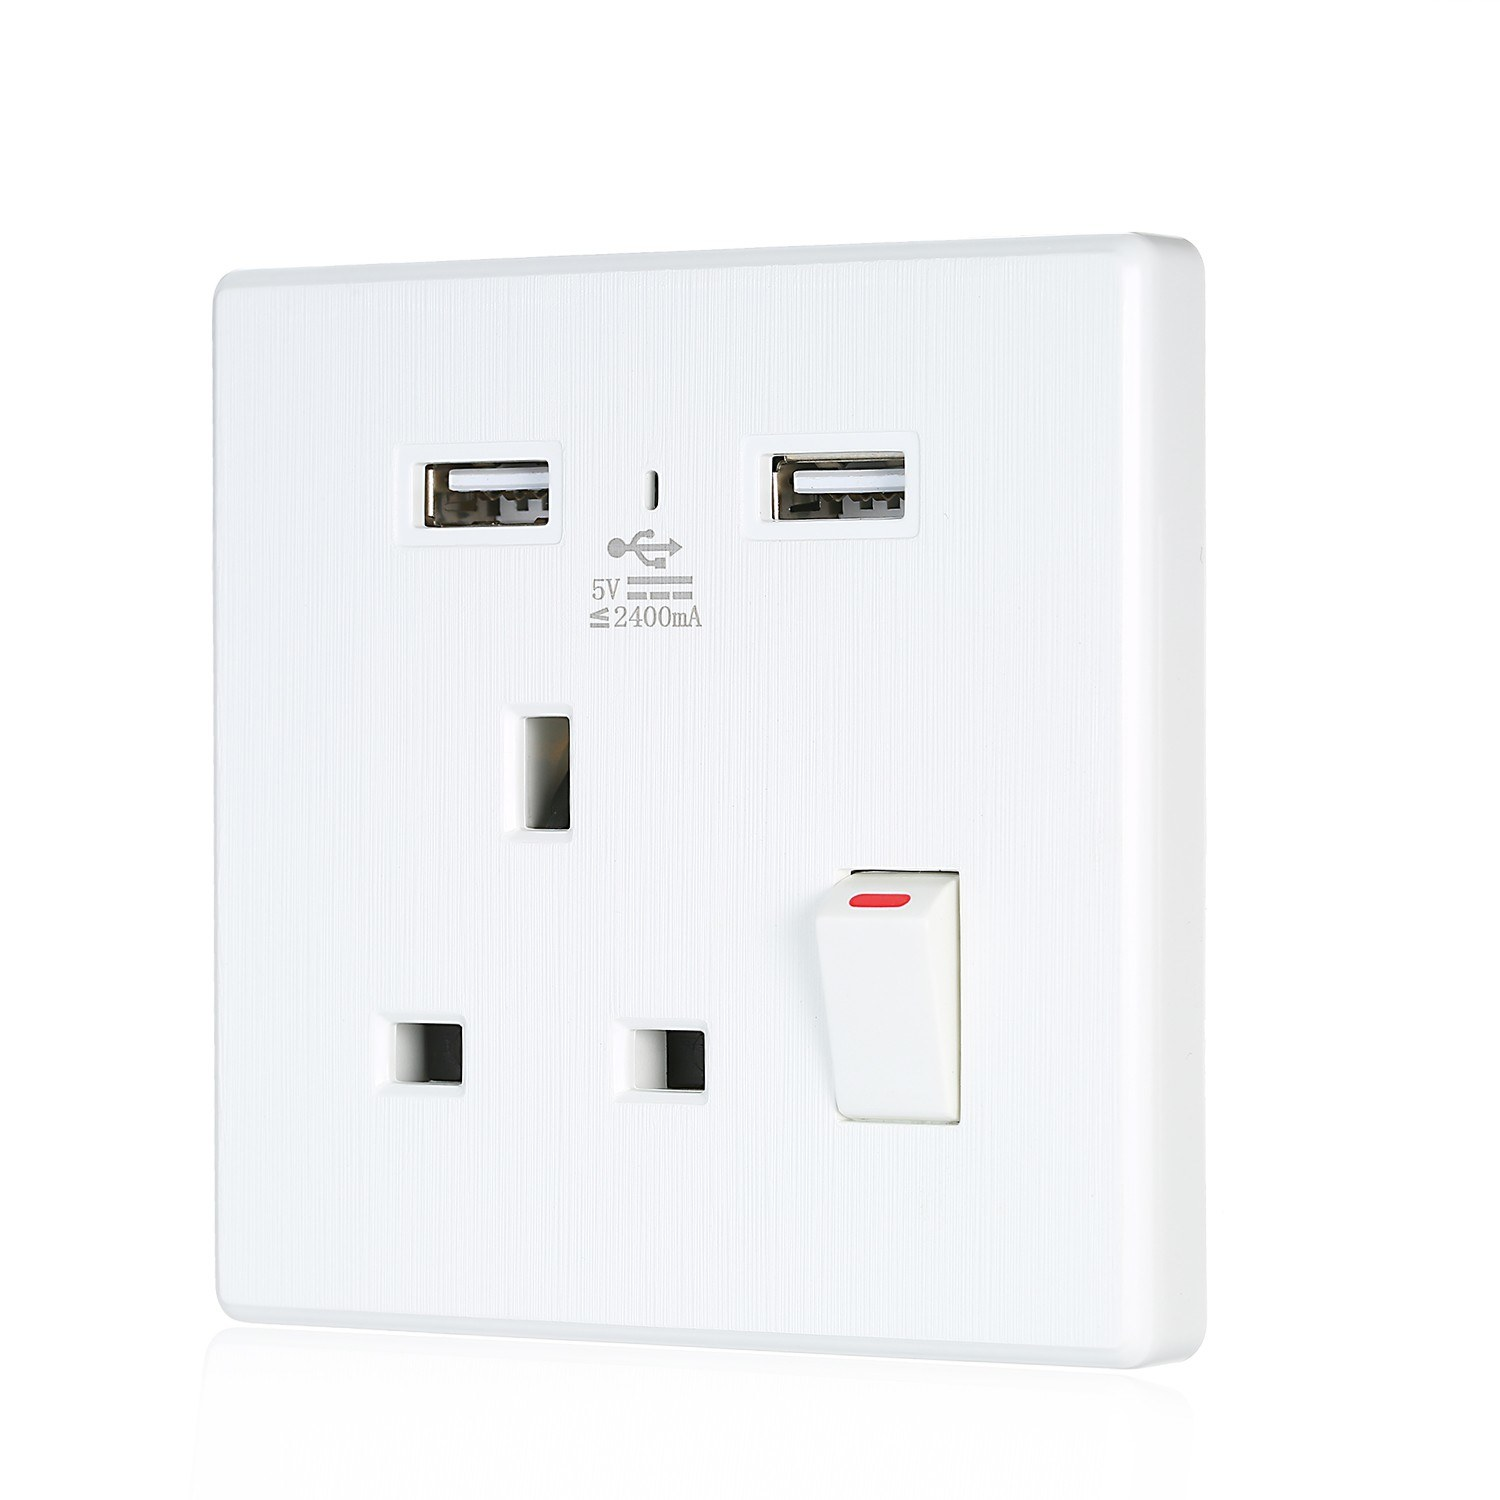 86*86mm AC110-250V 13A Wall USB Socket Panel Household Office Wall Switch Single Socket 2.4A USB 5V Charger Port UK Standard